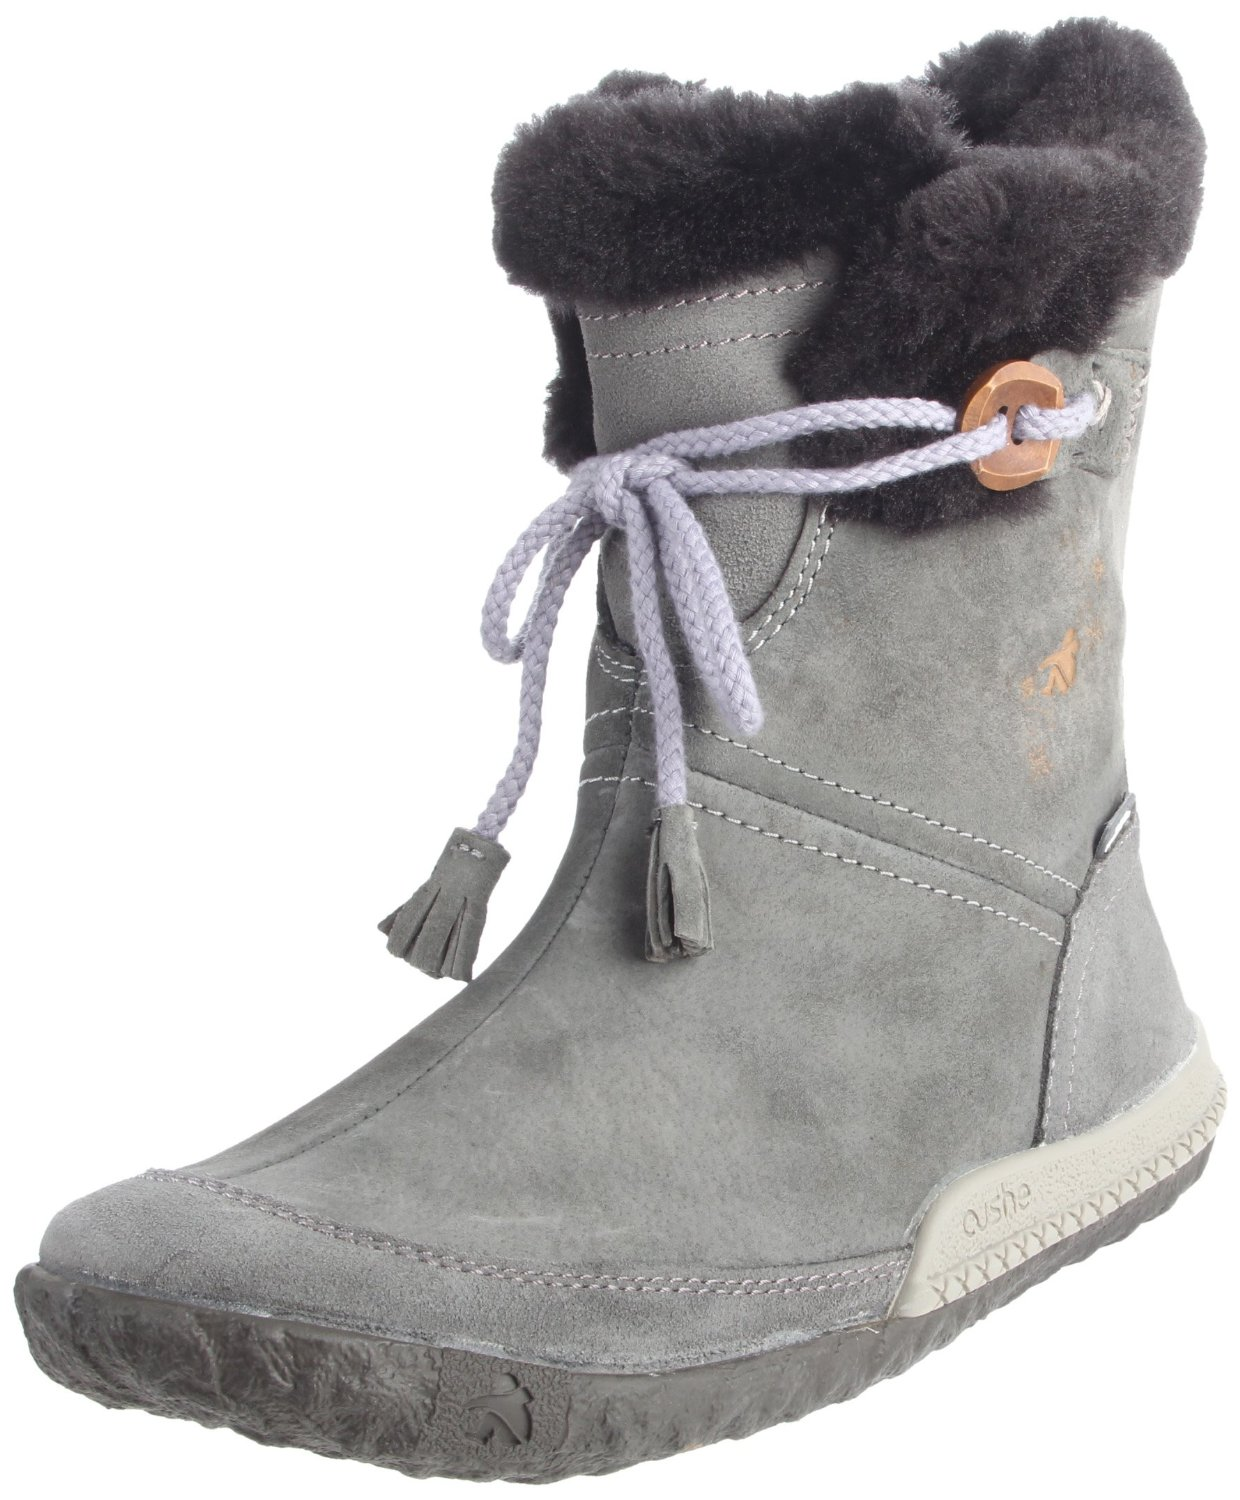 Cuddle up with this Cushe Boot on Your Next Ski Vacation